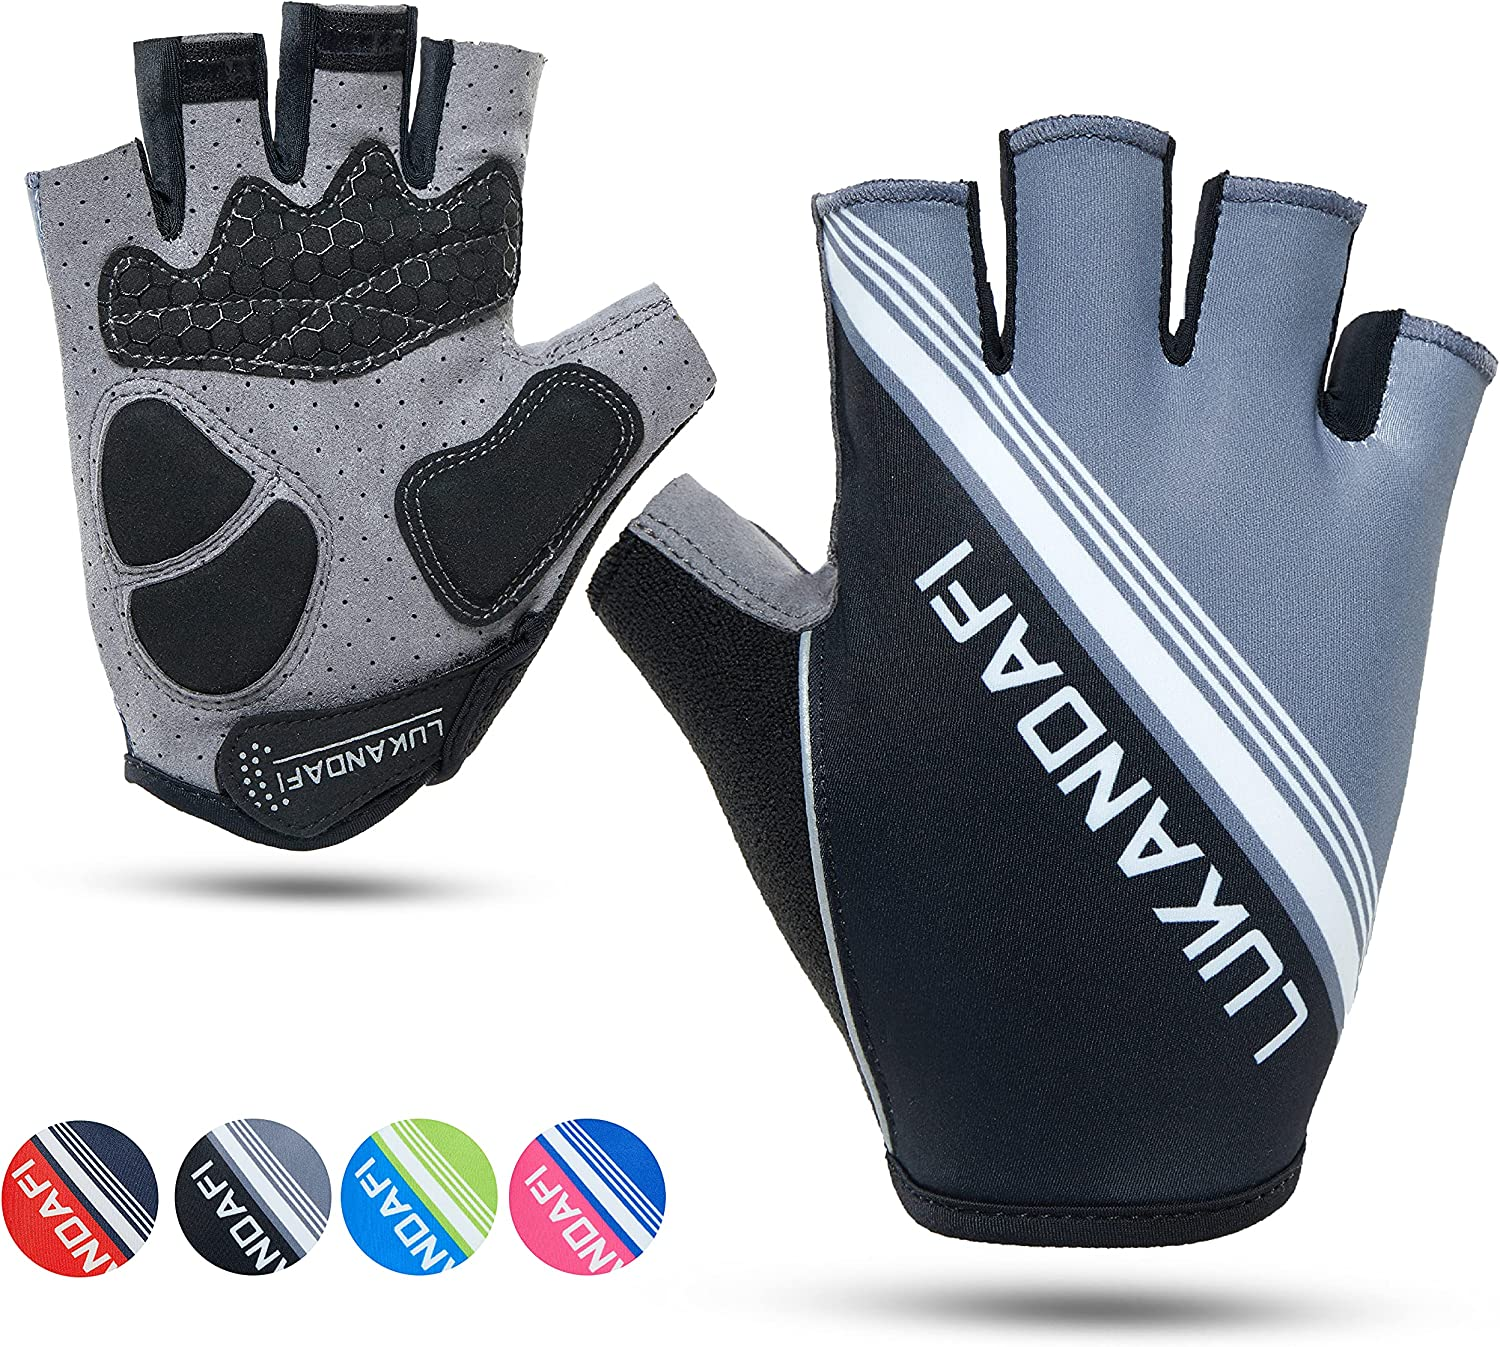 Cycling Gloves Selling and selling Half Finger Bike Bicycle Store Mens Womens and